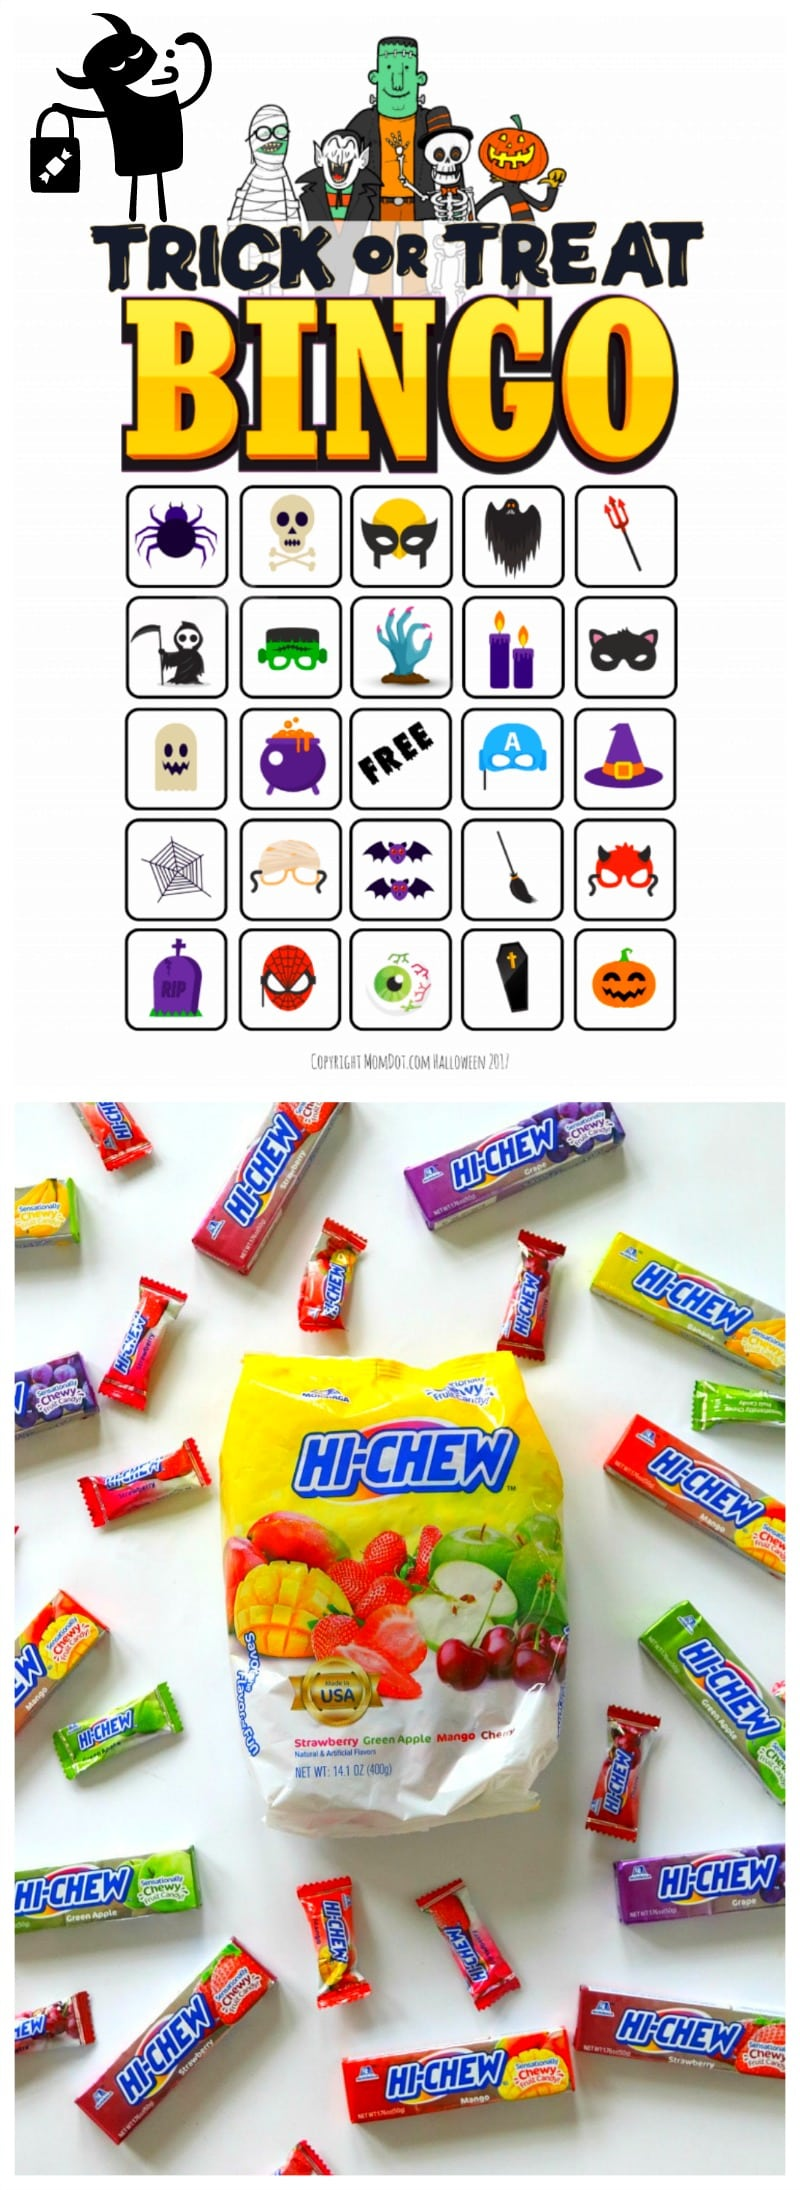 Trick or Treat BINGO Free Download, Find all the ghosts and ghoulies, win the candy! Super fun trick or treat game #halloween